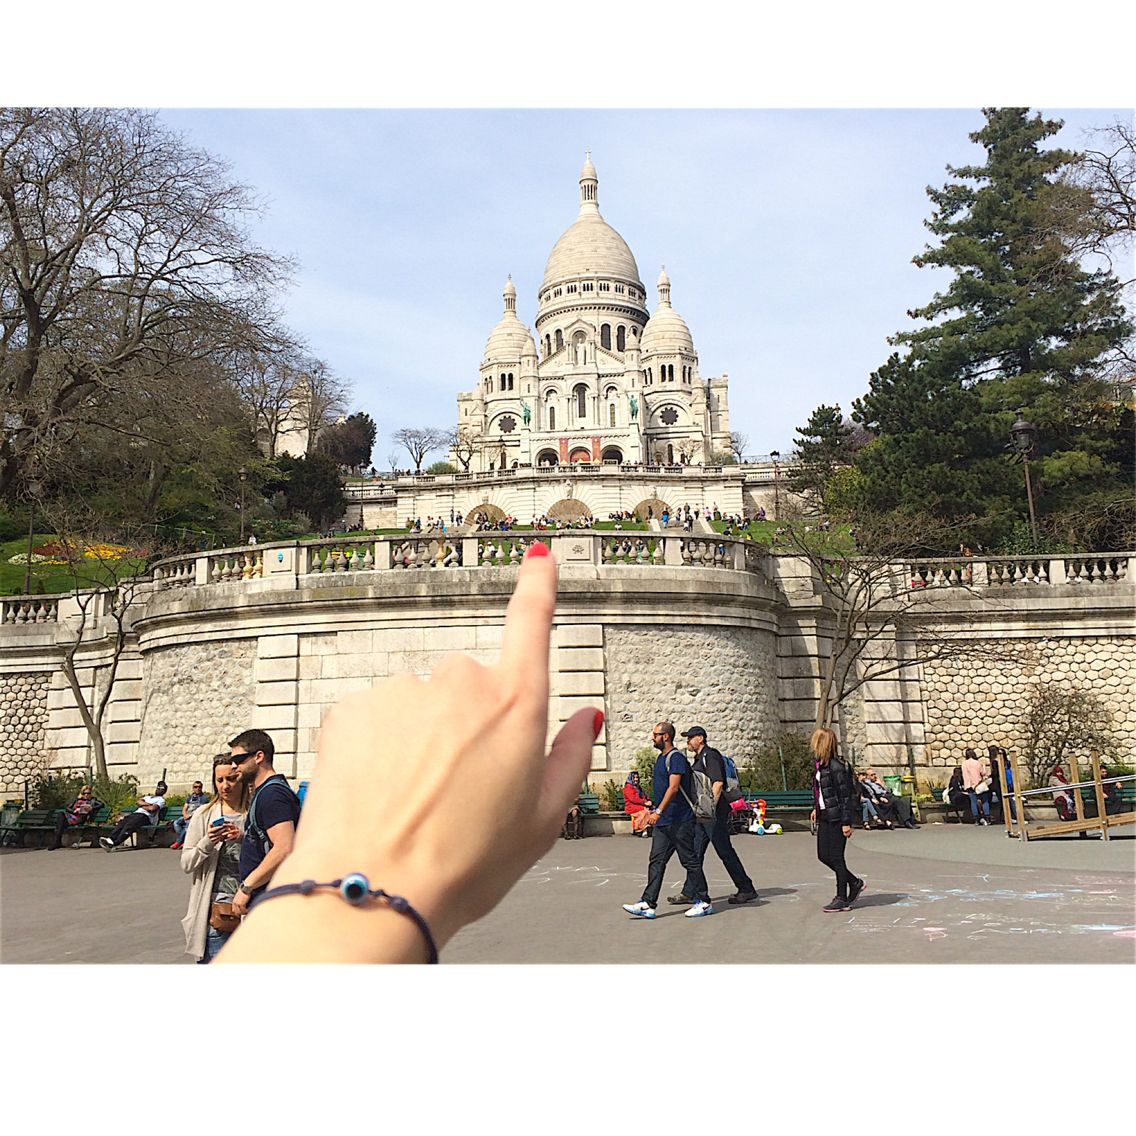 Ojo is everywhere. Send us your picture. #social #paris #sacrecoeur #Montmartre  #bracelet #pulsera #friendship #amitié #amistad  #luckycharm #portebonheur #cadeau #regalo #gift #suerte #protección #chance #evileye #mauvaisoeil #maladeojo #ojo #eye #oeil #bijoux #jewelry